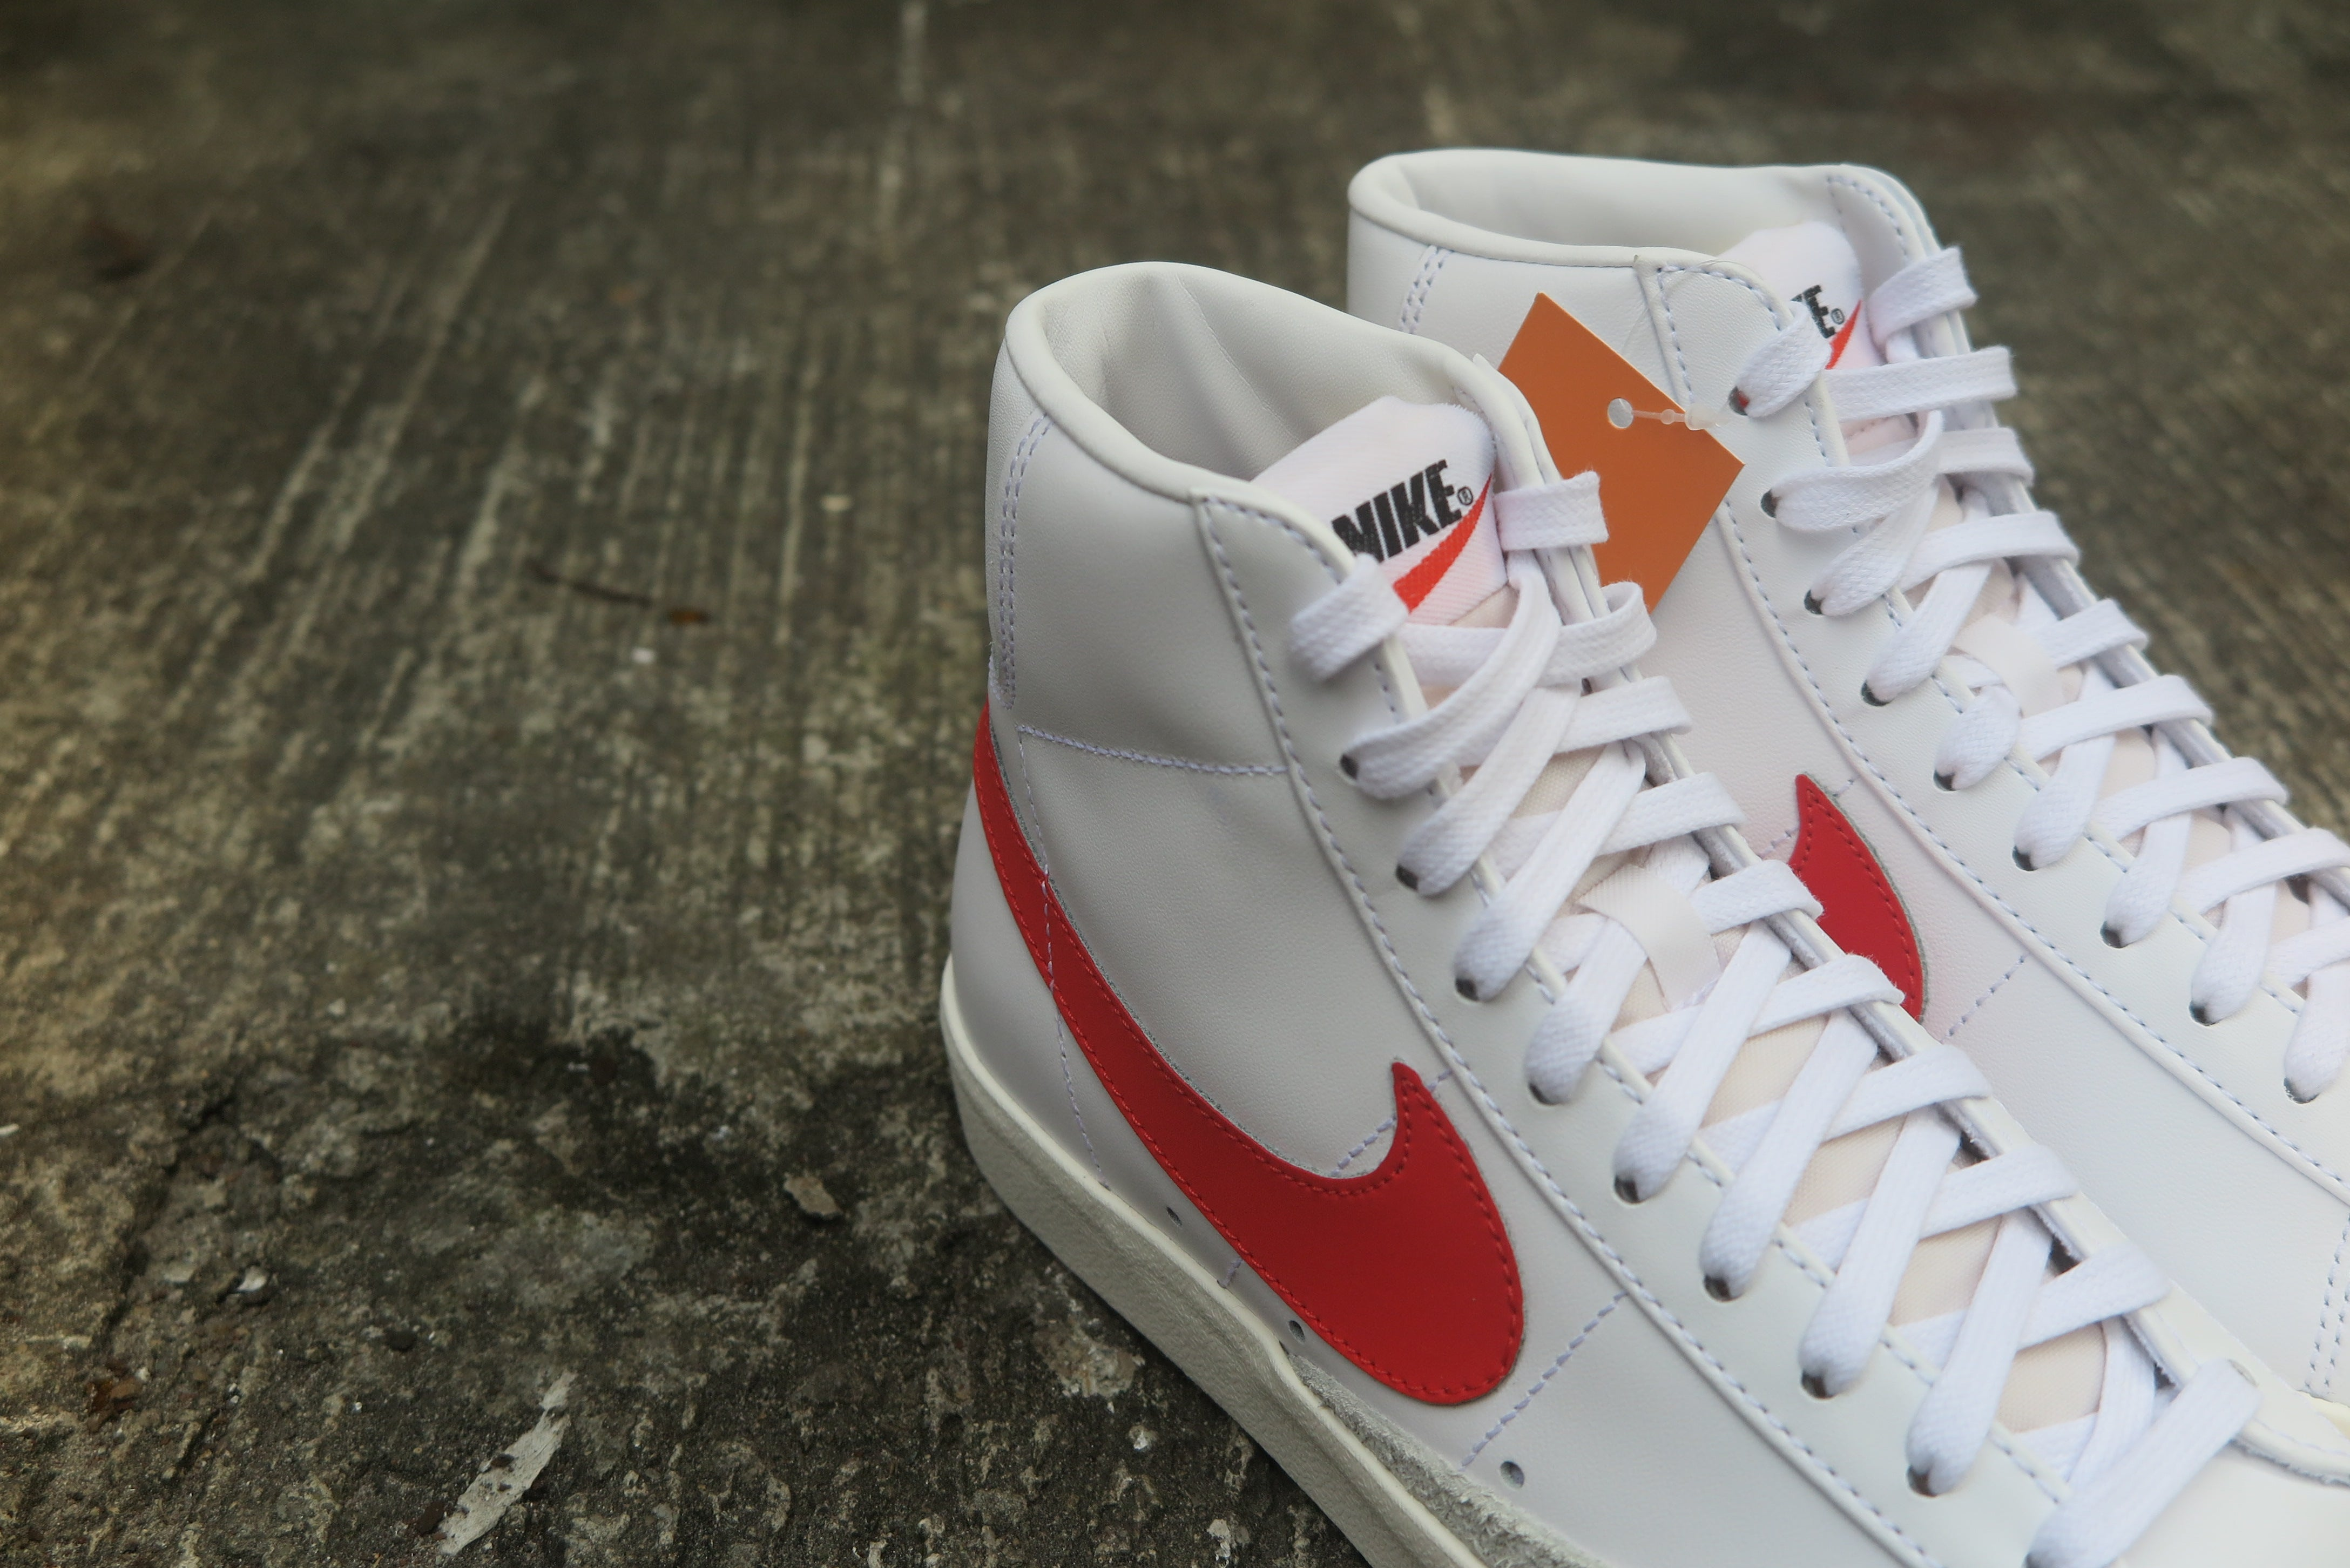 Nike Blazer Mid '77 VNTG - Habanero Red/Sail/White #BQ6806-600-Preorder Item-Navy Selected Shop